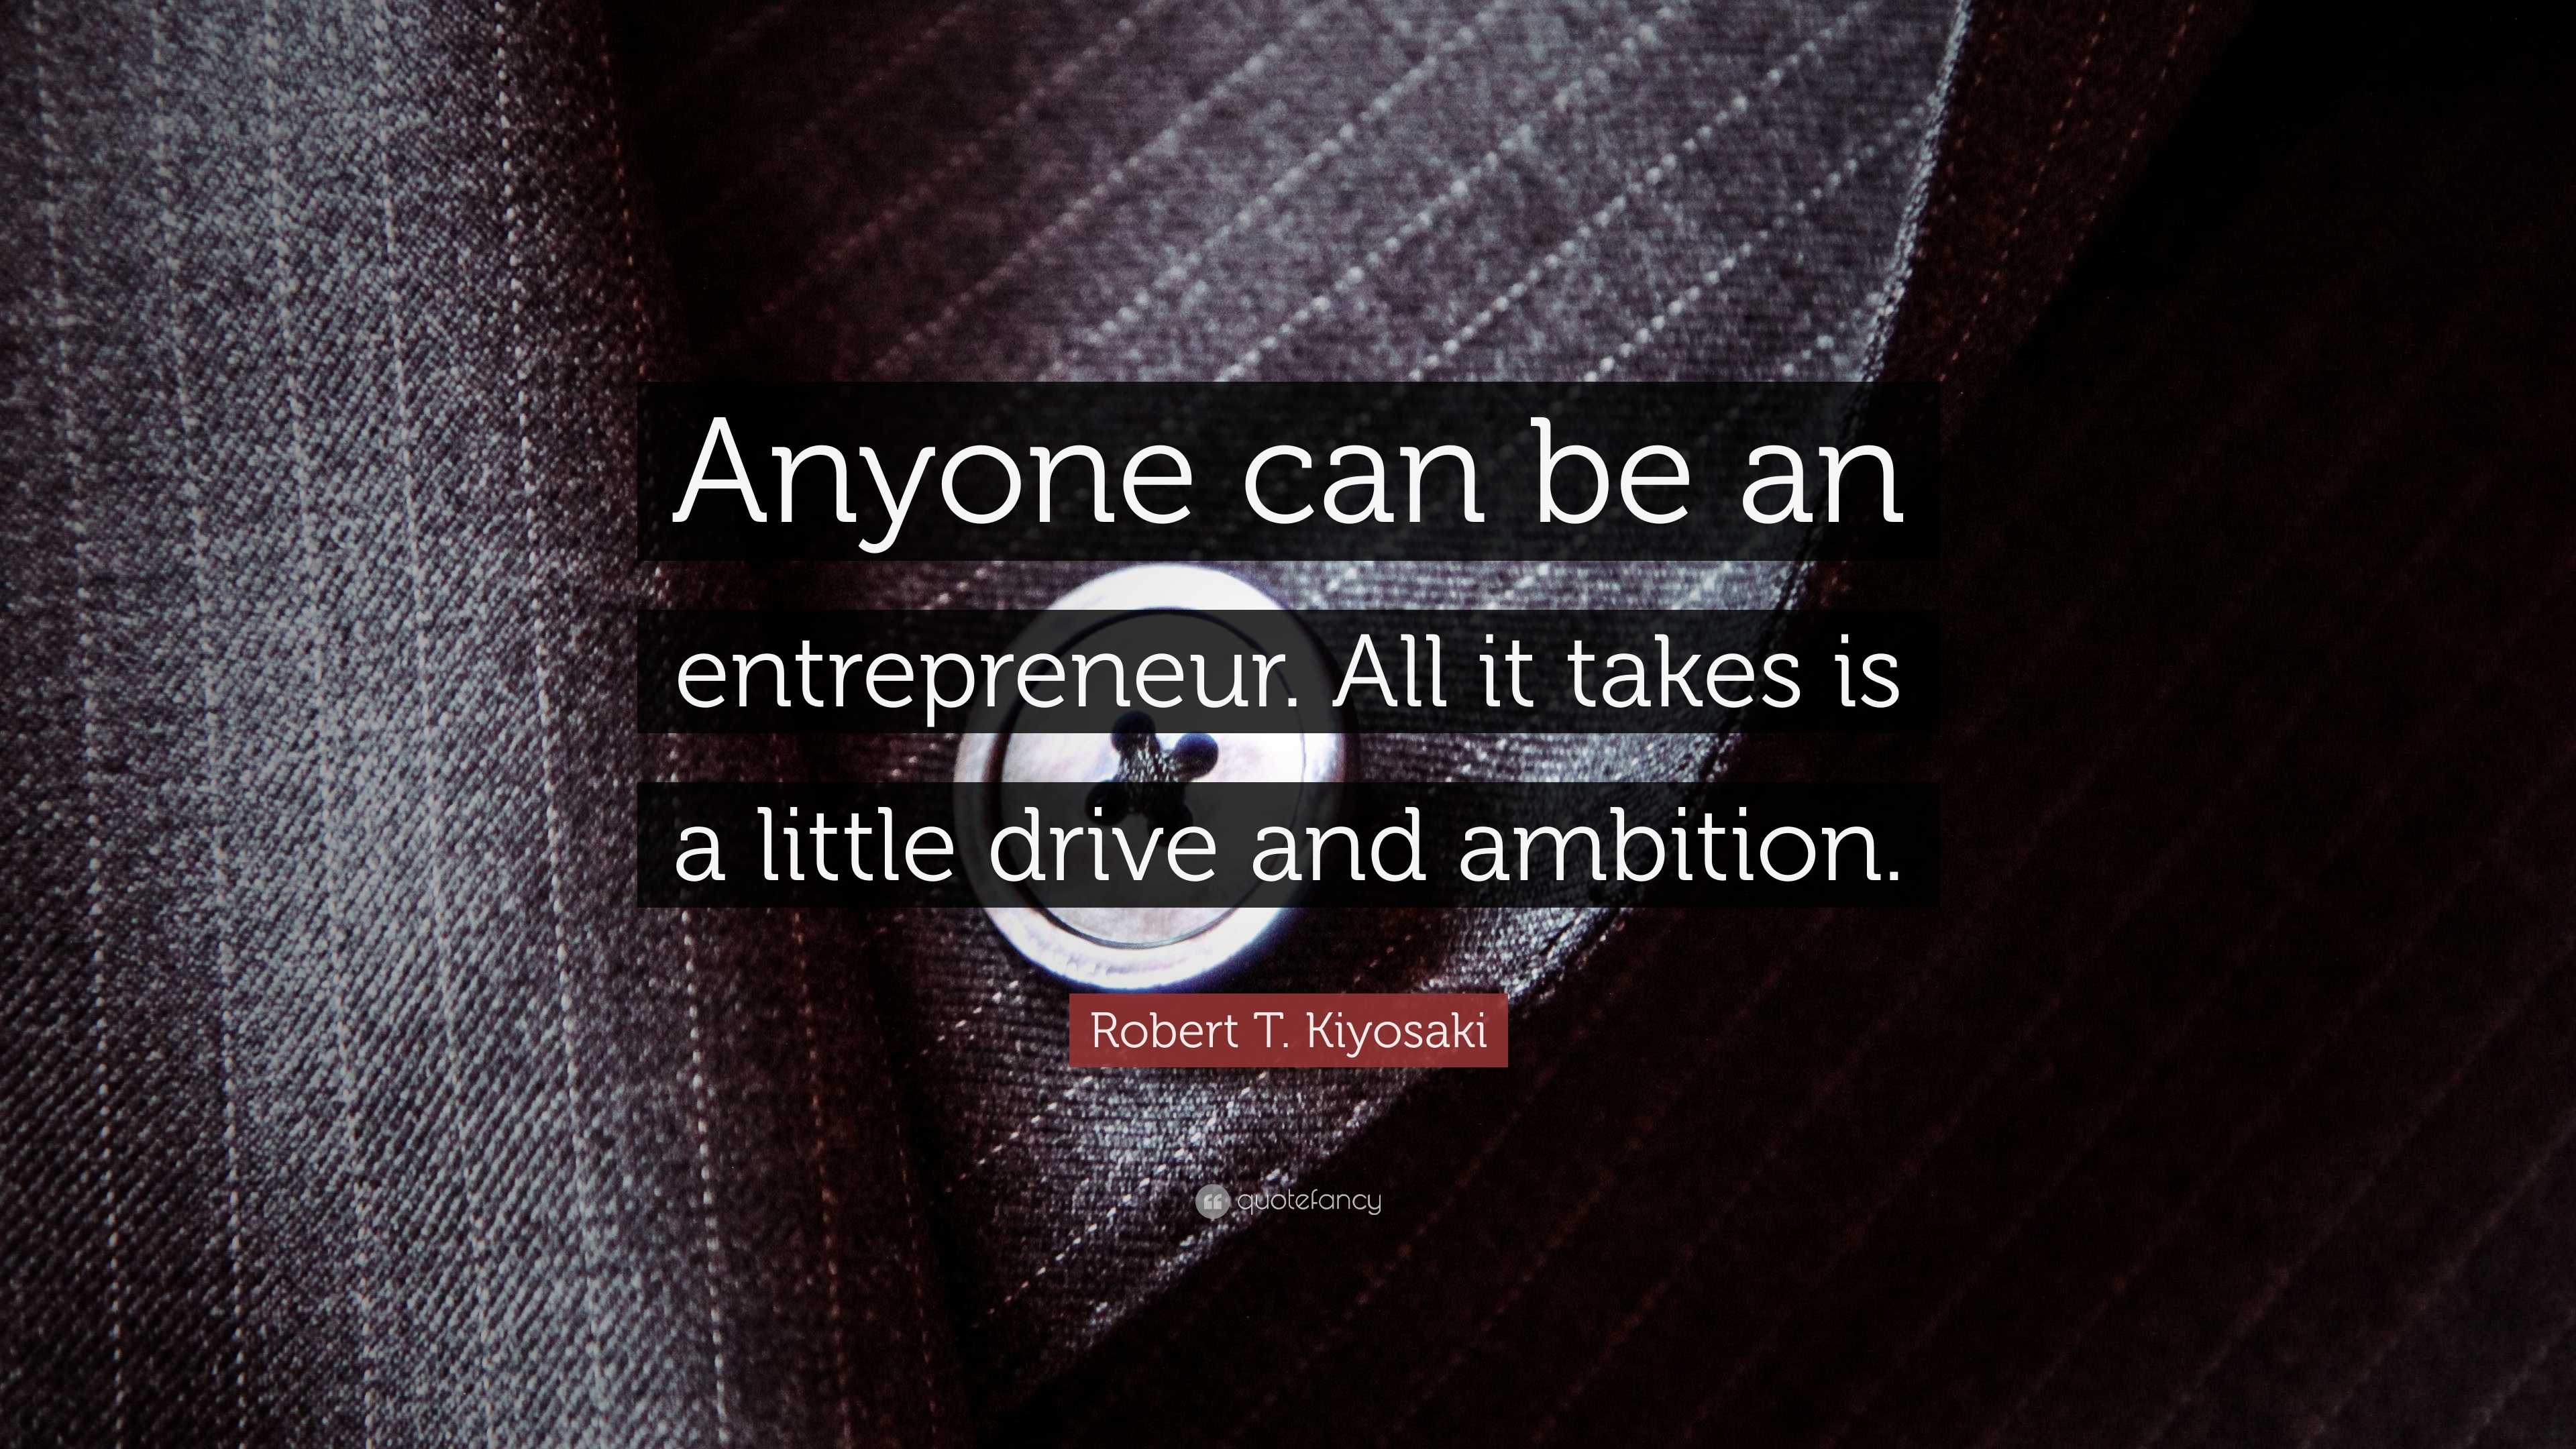 Robert t kiyosaki quote anyone can be an entrepreneur all it takes is a little drive and - Entrepreneur wallpaper ...